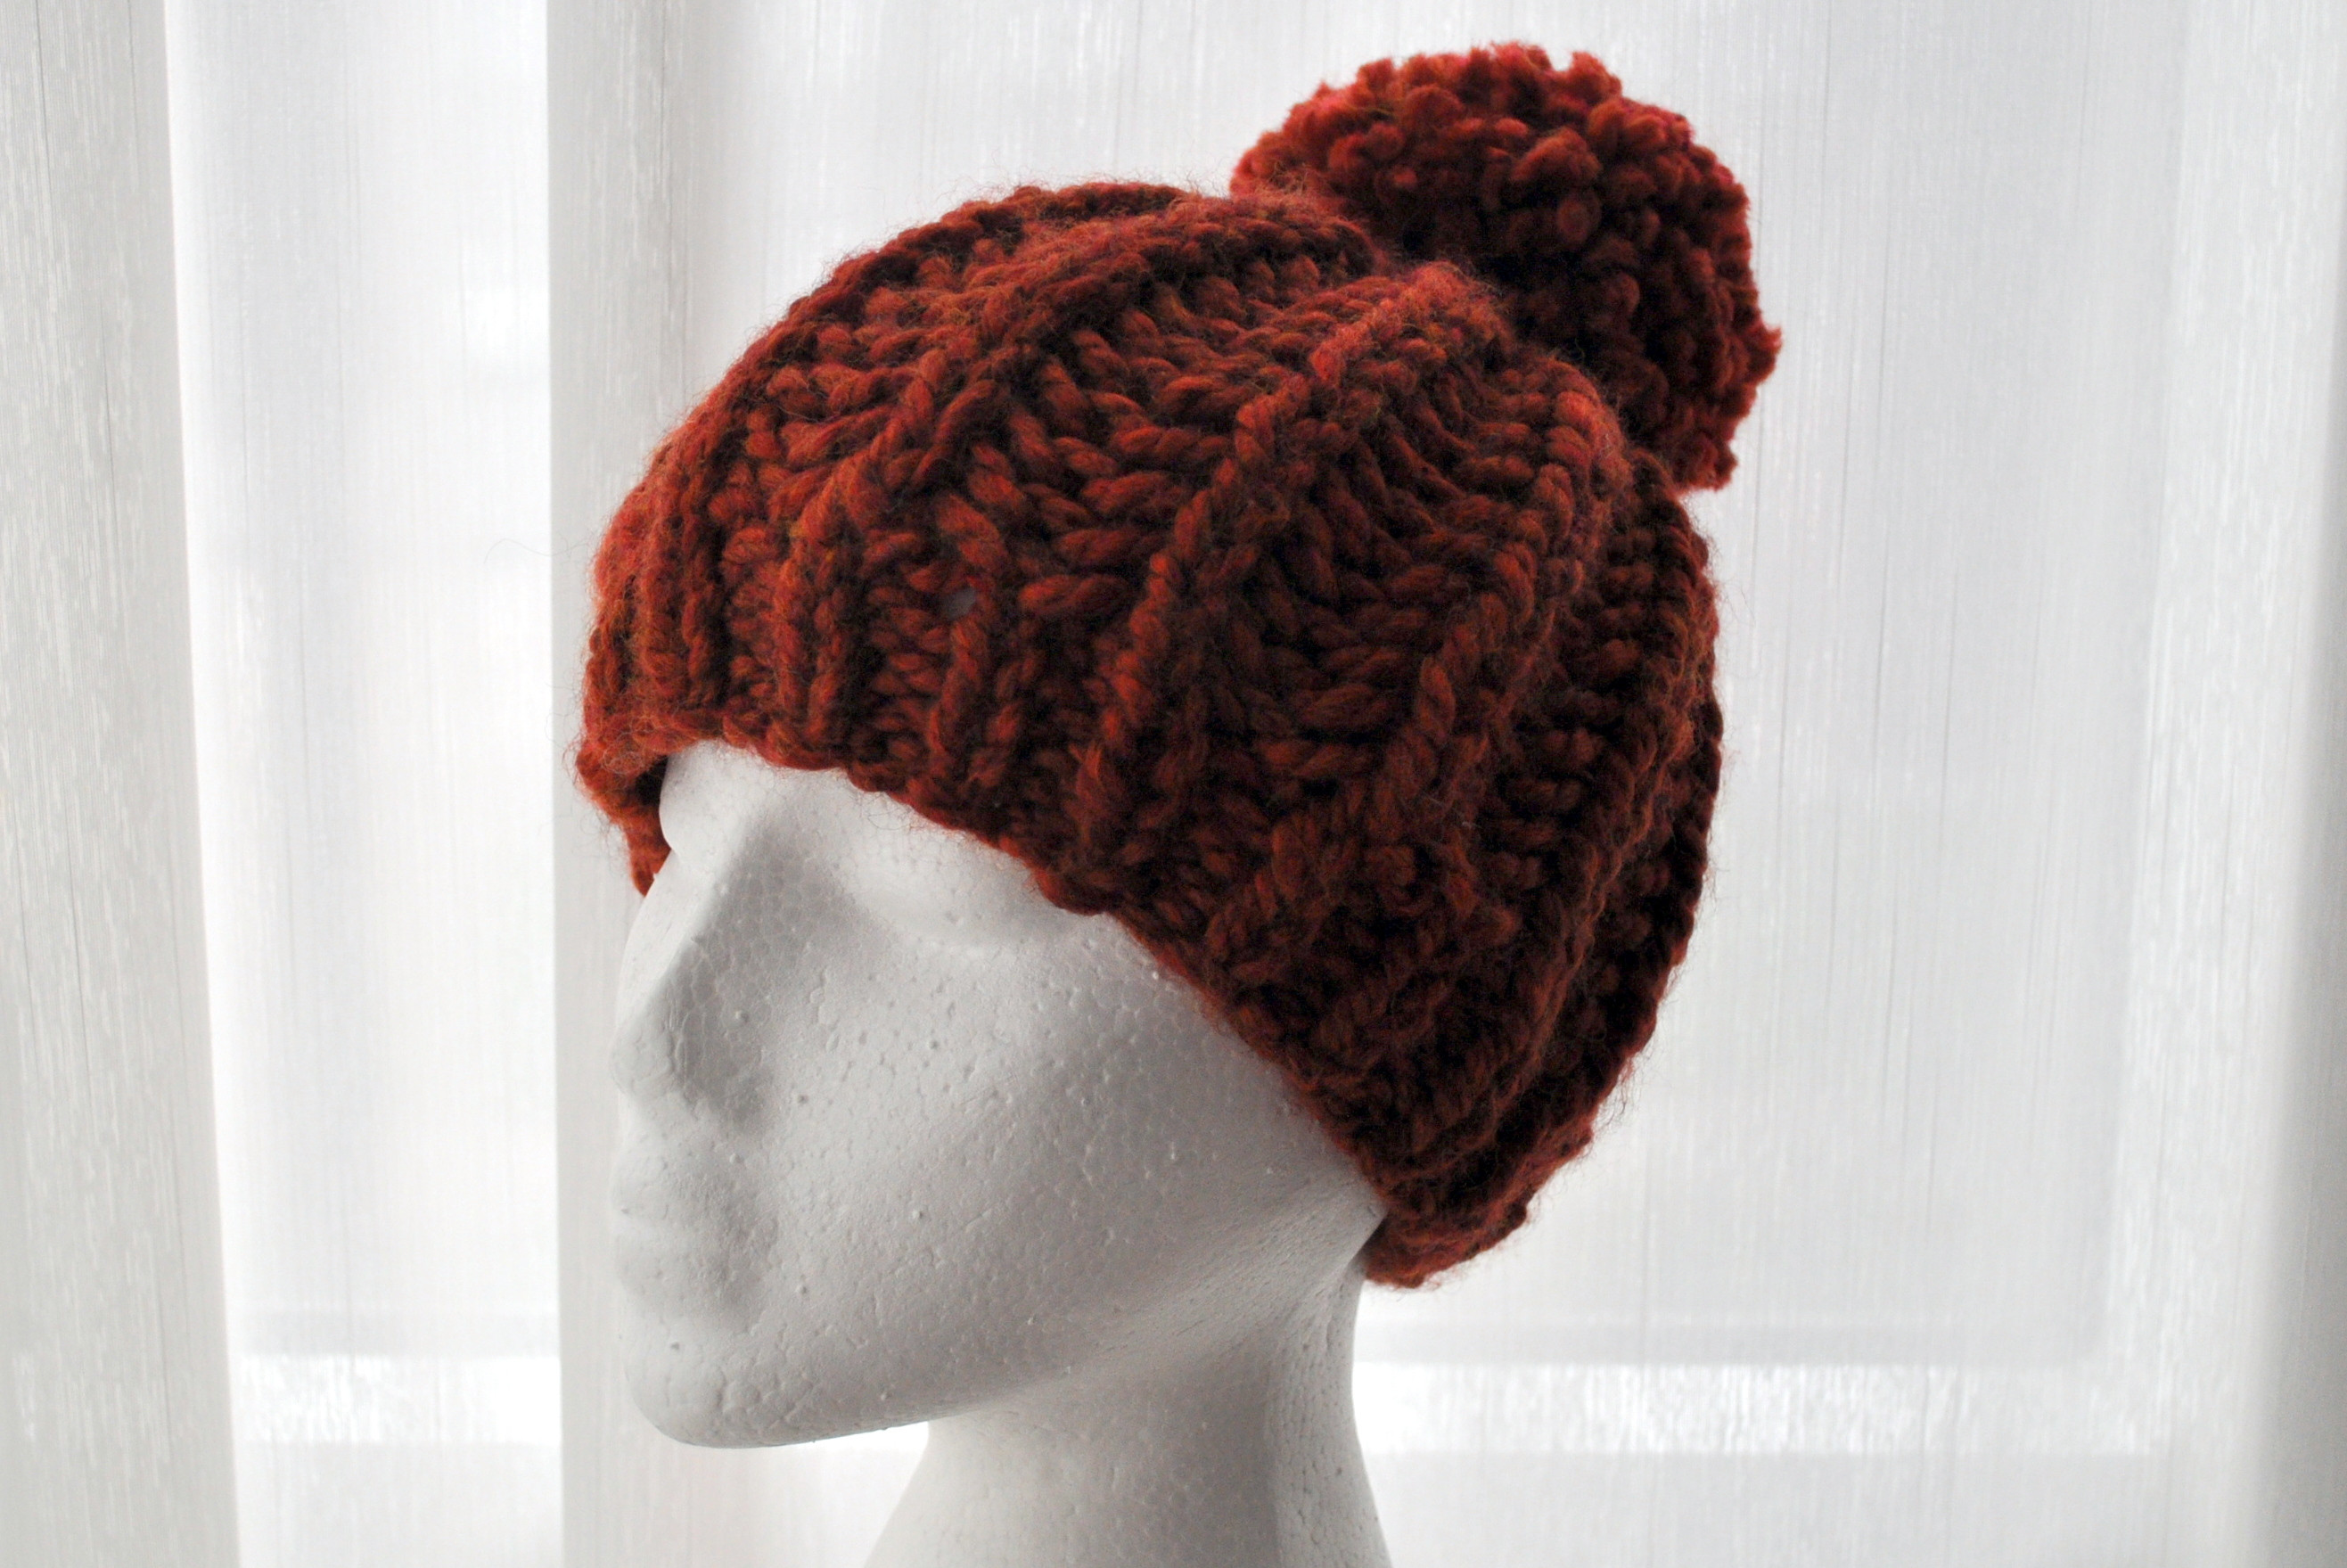 Inspirational Free Pattern Knit Fisherman Ribbed Hipster Hat Knitting and Crochet Patterns Of Adorable 46 Ideas Knitting and Crochet Patterns